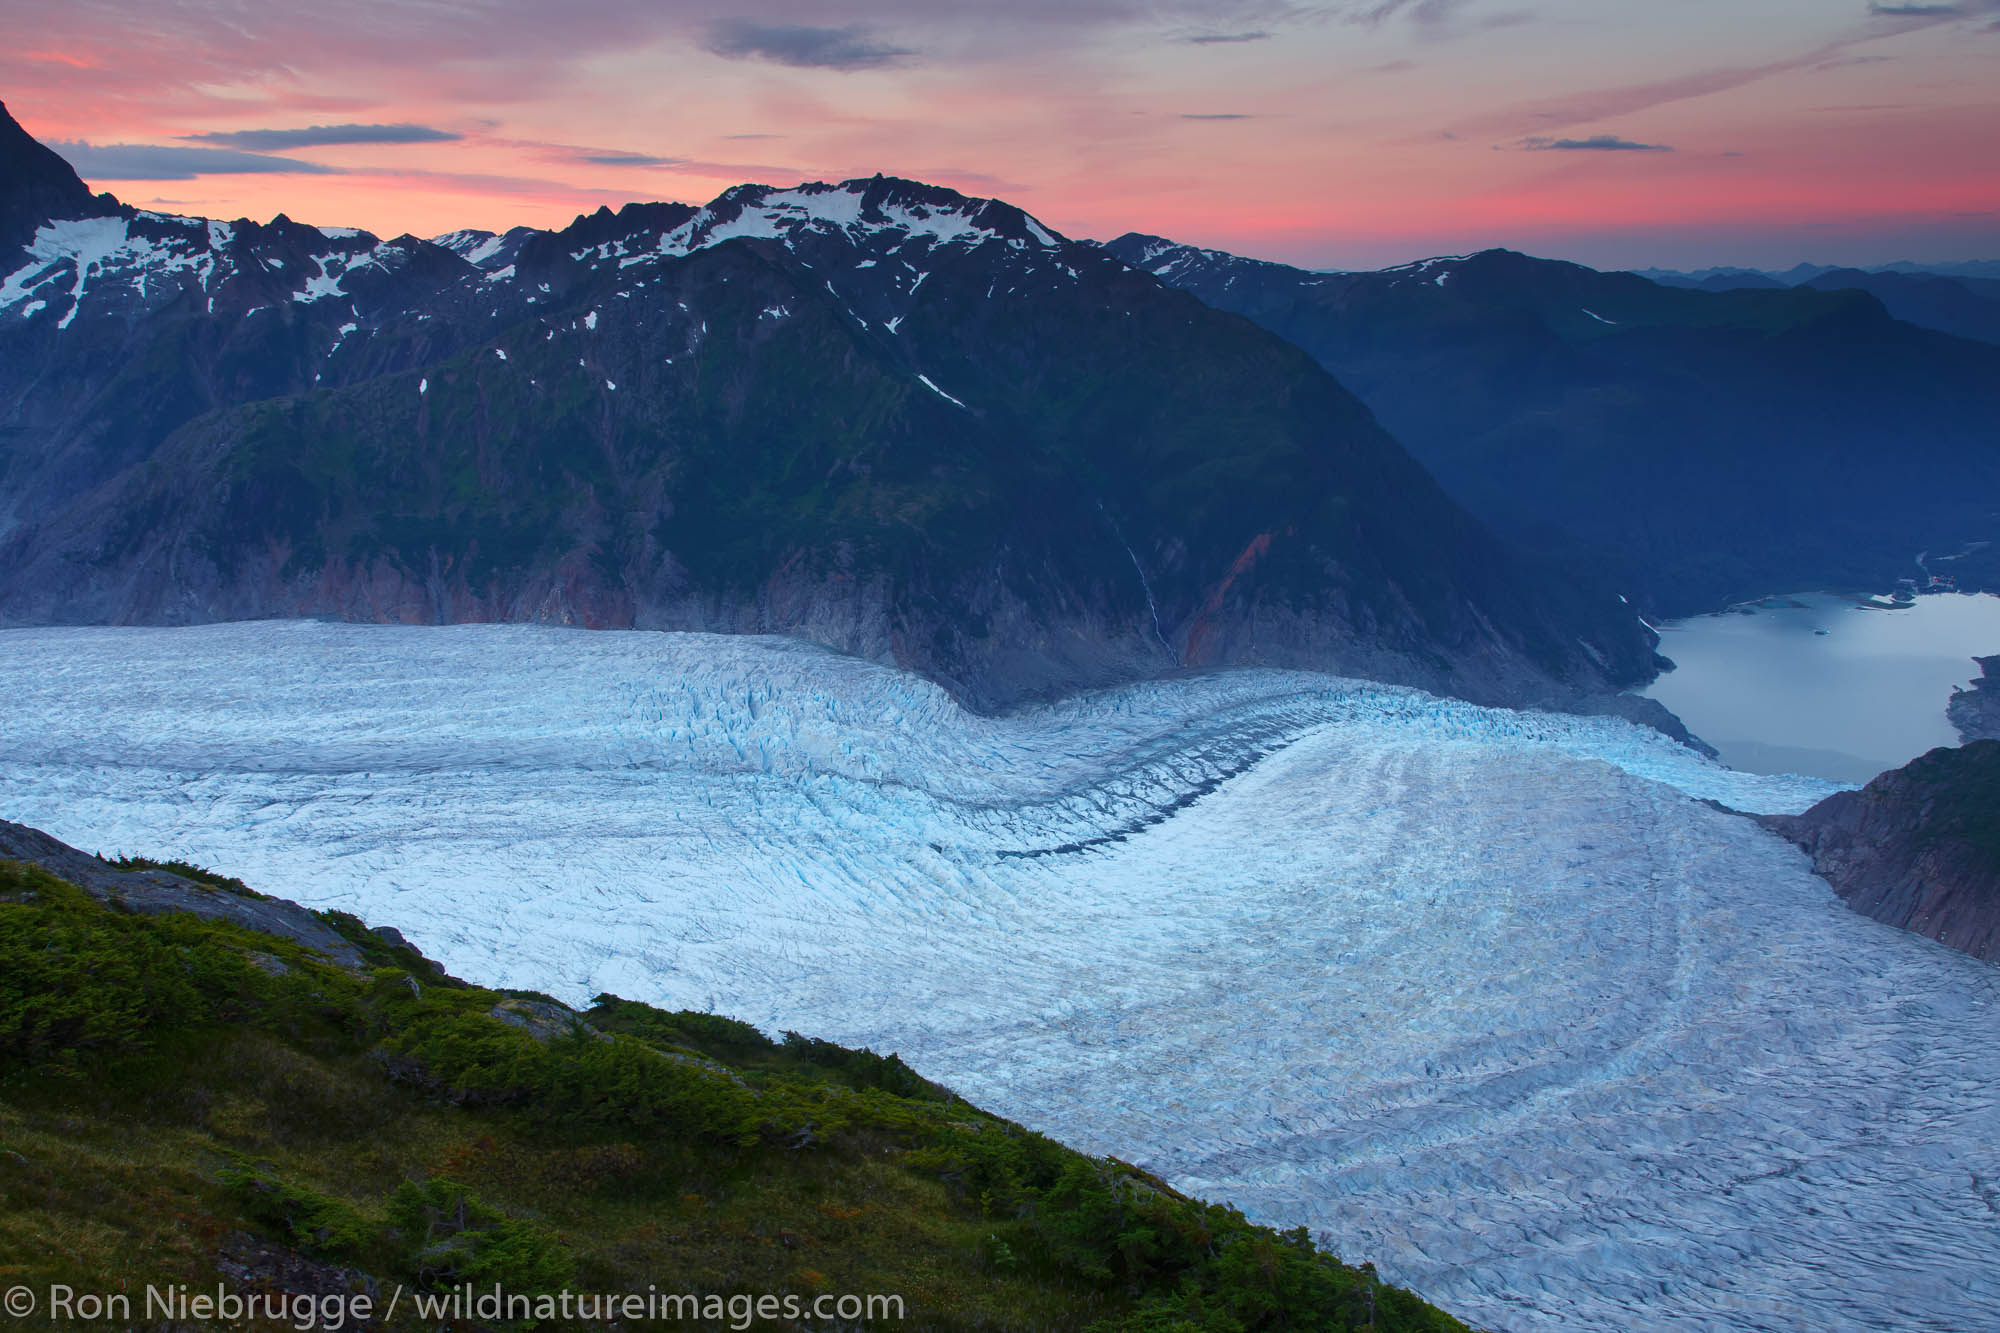 From Mount Stroller White above the Mendenhall Glacier, Tongass National Forest, Alaska.